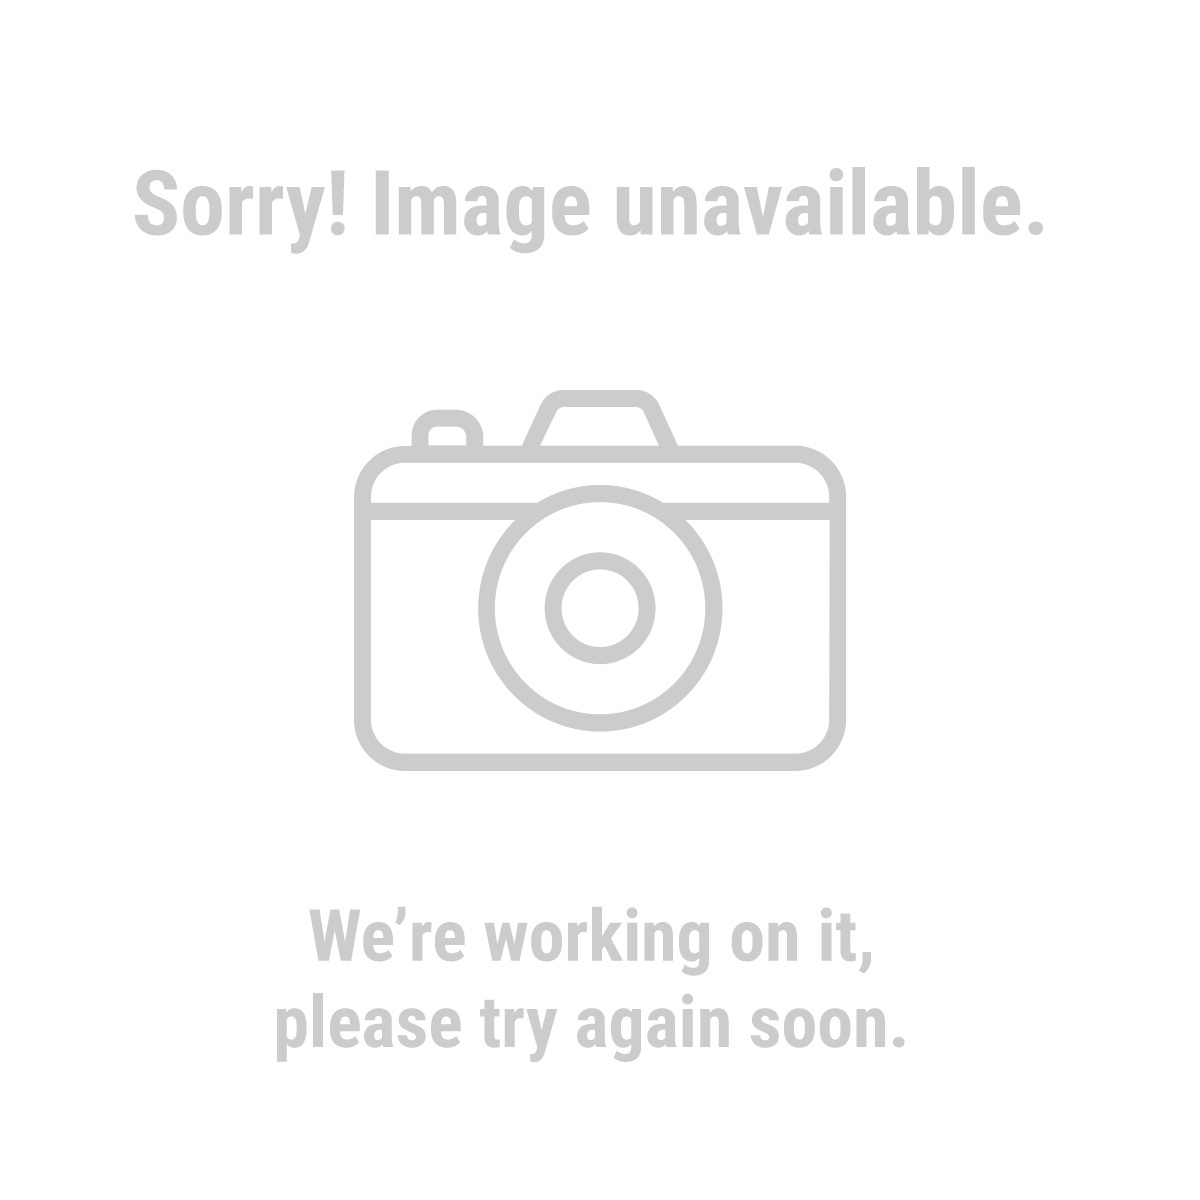 HFT 60772 12 Piece Microfiber Cleaning Cloths